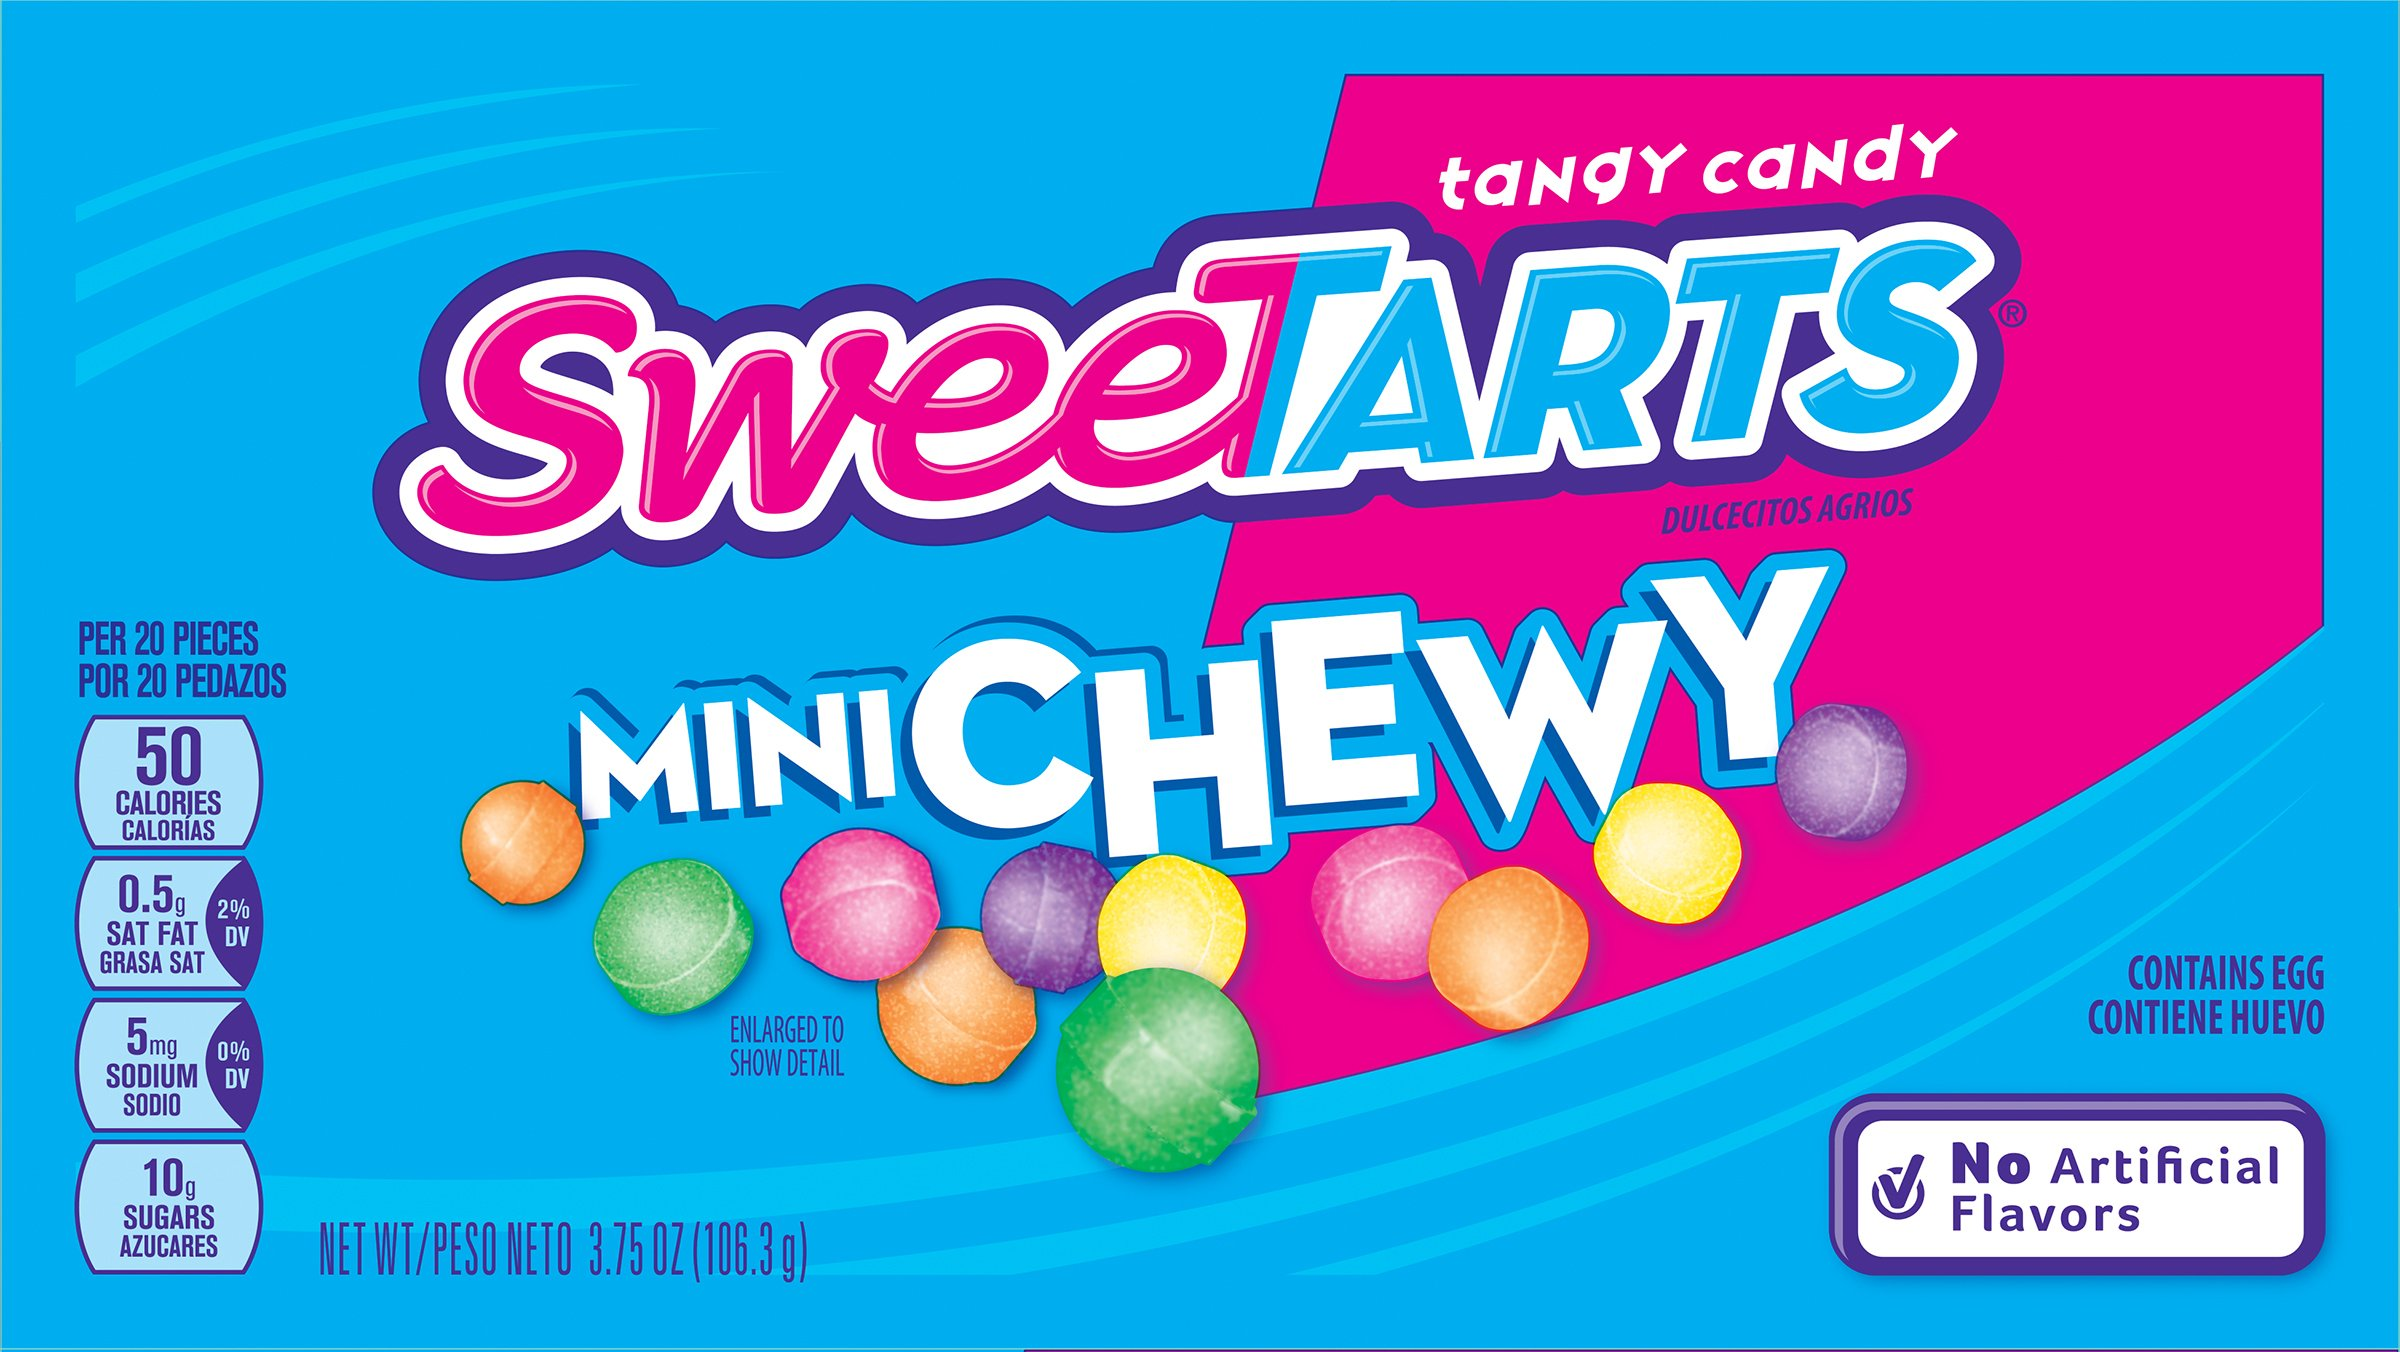 SweeTARTS Mini Chewy Candy Video Box, 3.75 Ounce (Pack of 12) by SweeTARTS